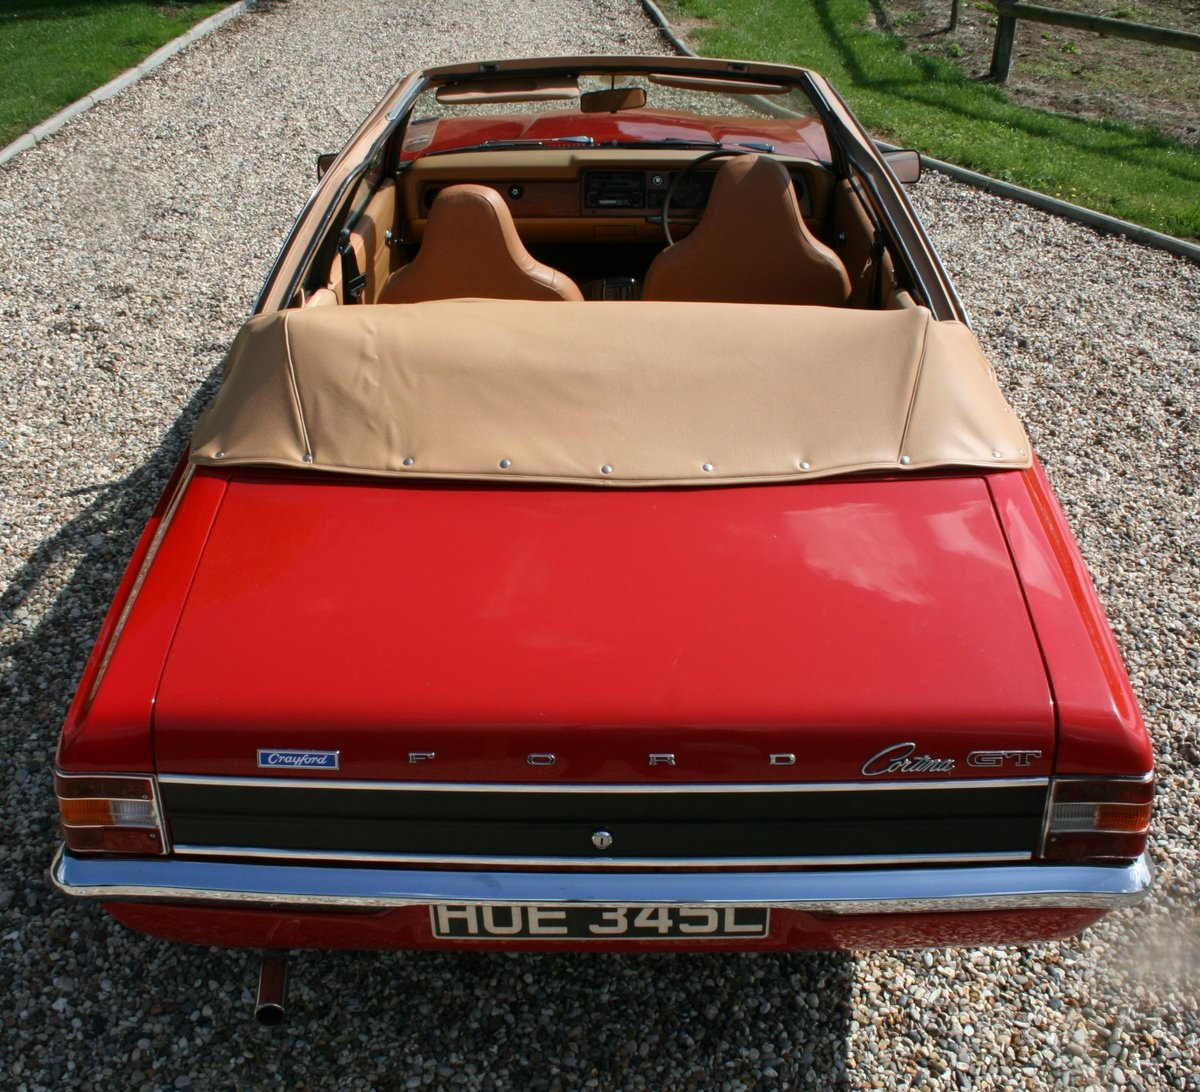 1972 Ford Cortina MK3 2.0 GT Crayford Convertible Auto.Very Rare For Sale (picture 2 of 6)